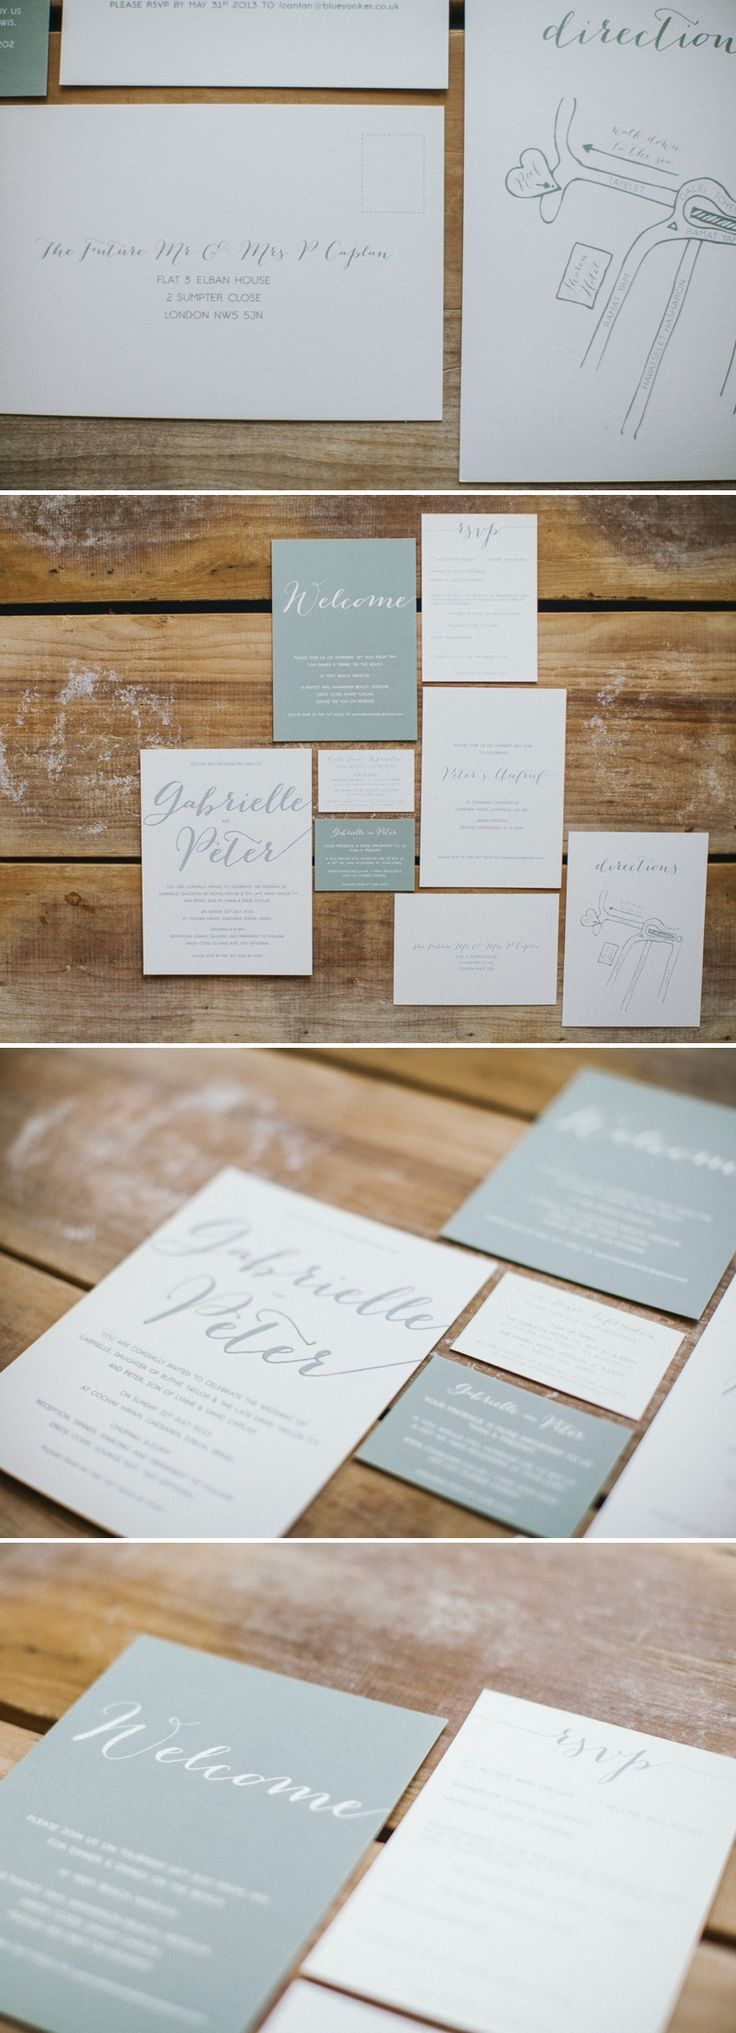 A helpful round-up of the best wedding stationery suppliers to be found in Rock My Wedding's handpicked directory - The Love Lust List. | Rock My Wedding